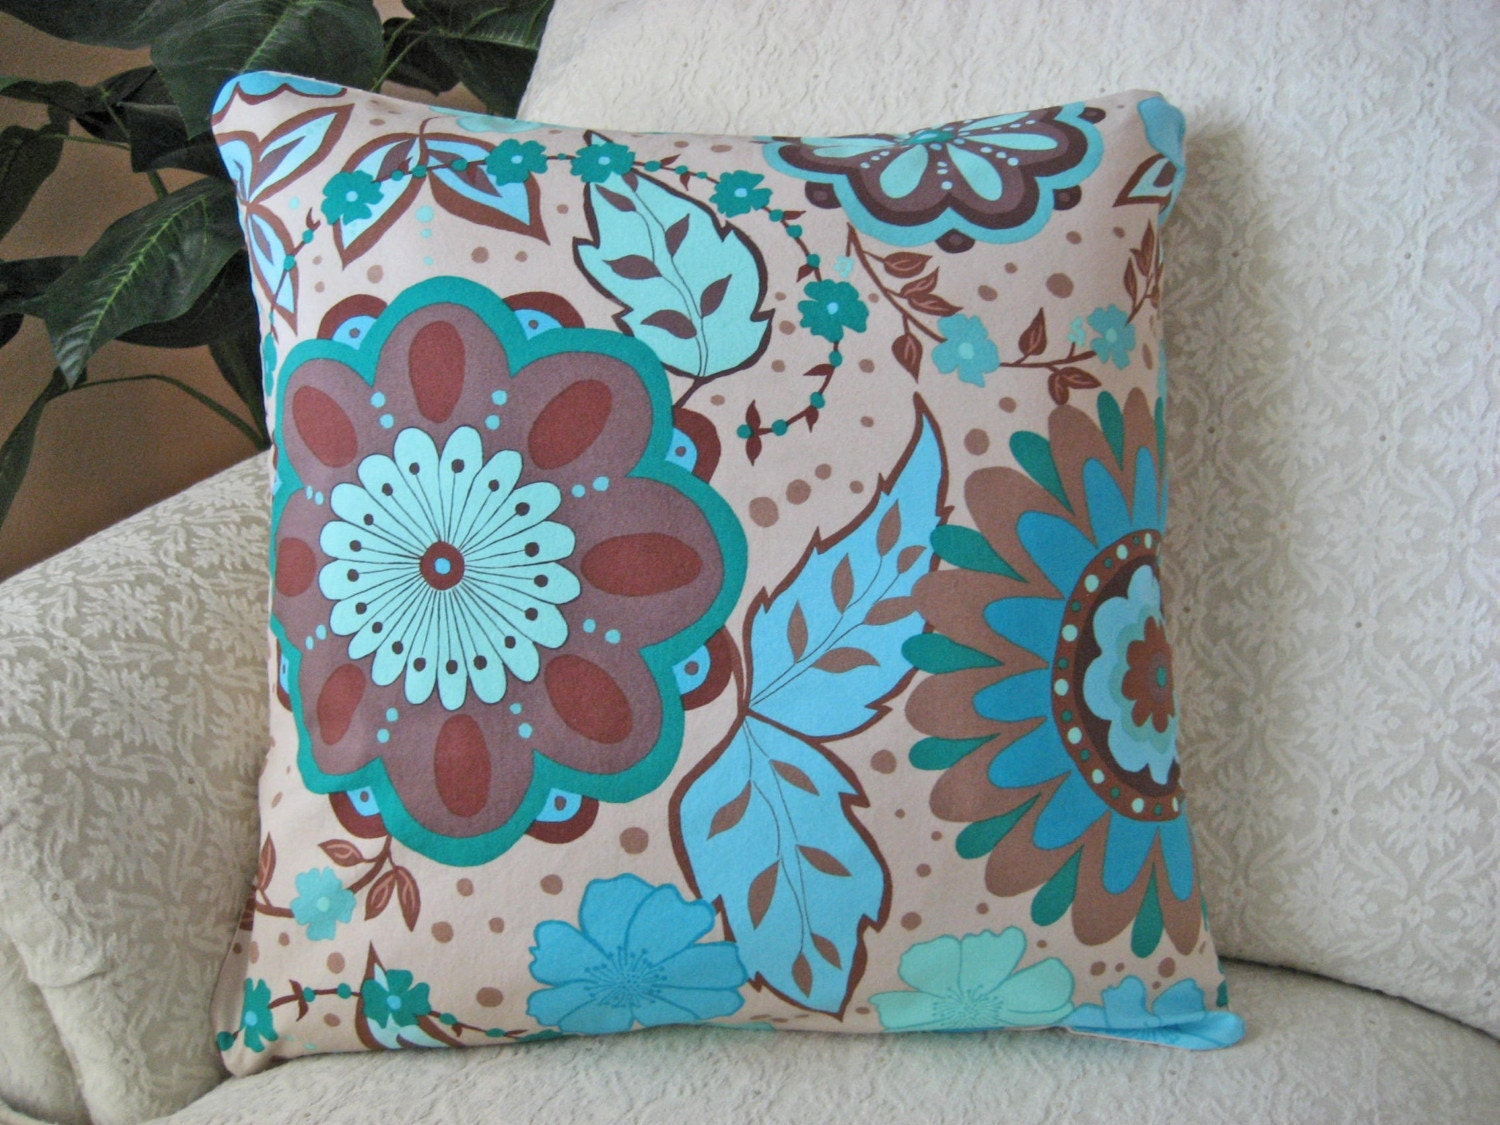 Decorative Throw Pillow Cover Blue 18 x 18 Modern Floral